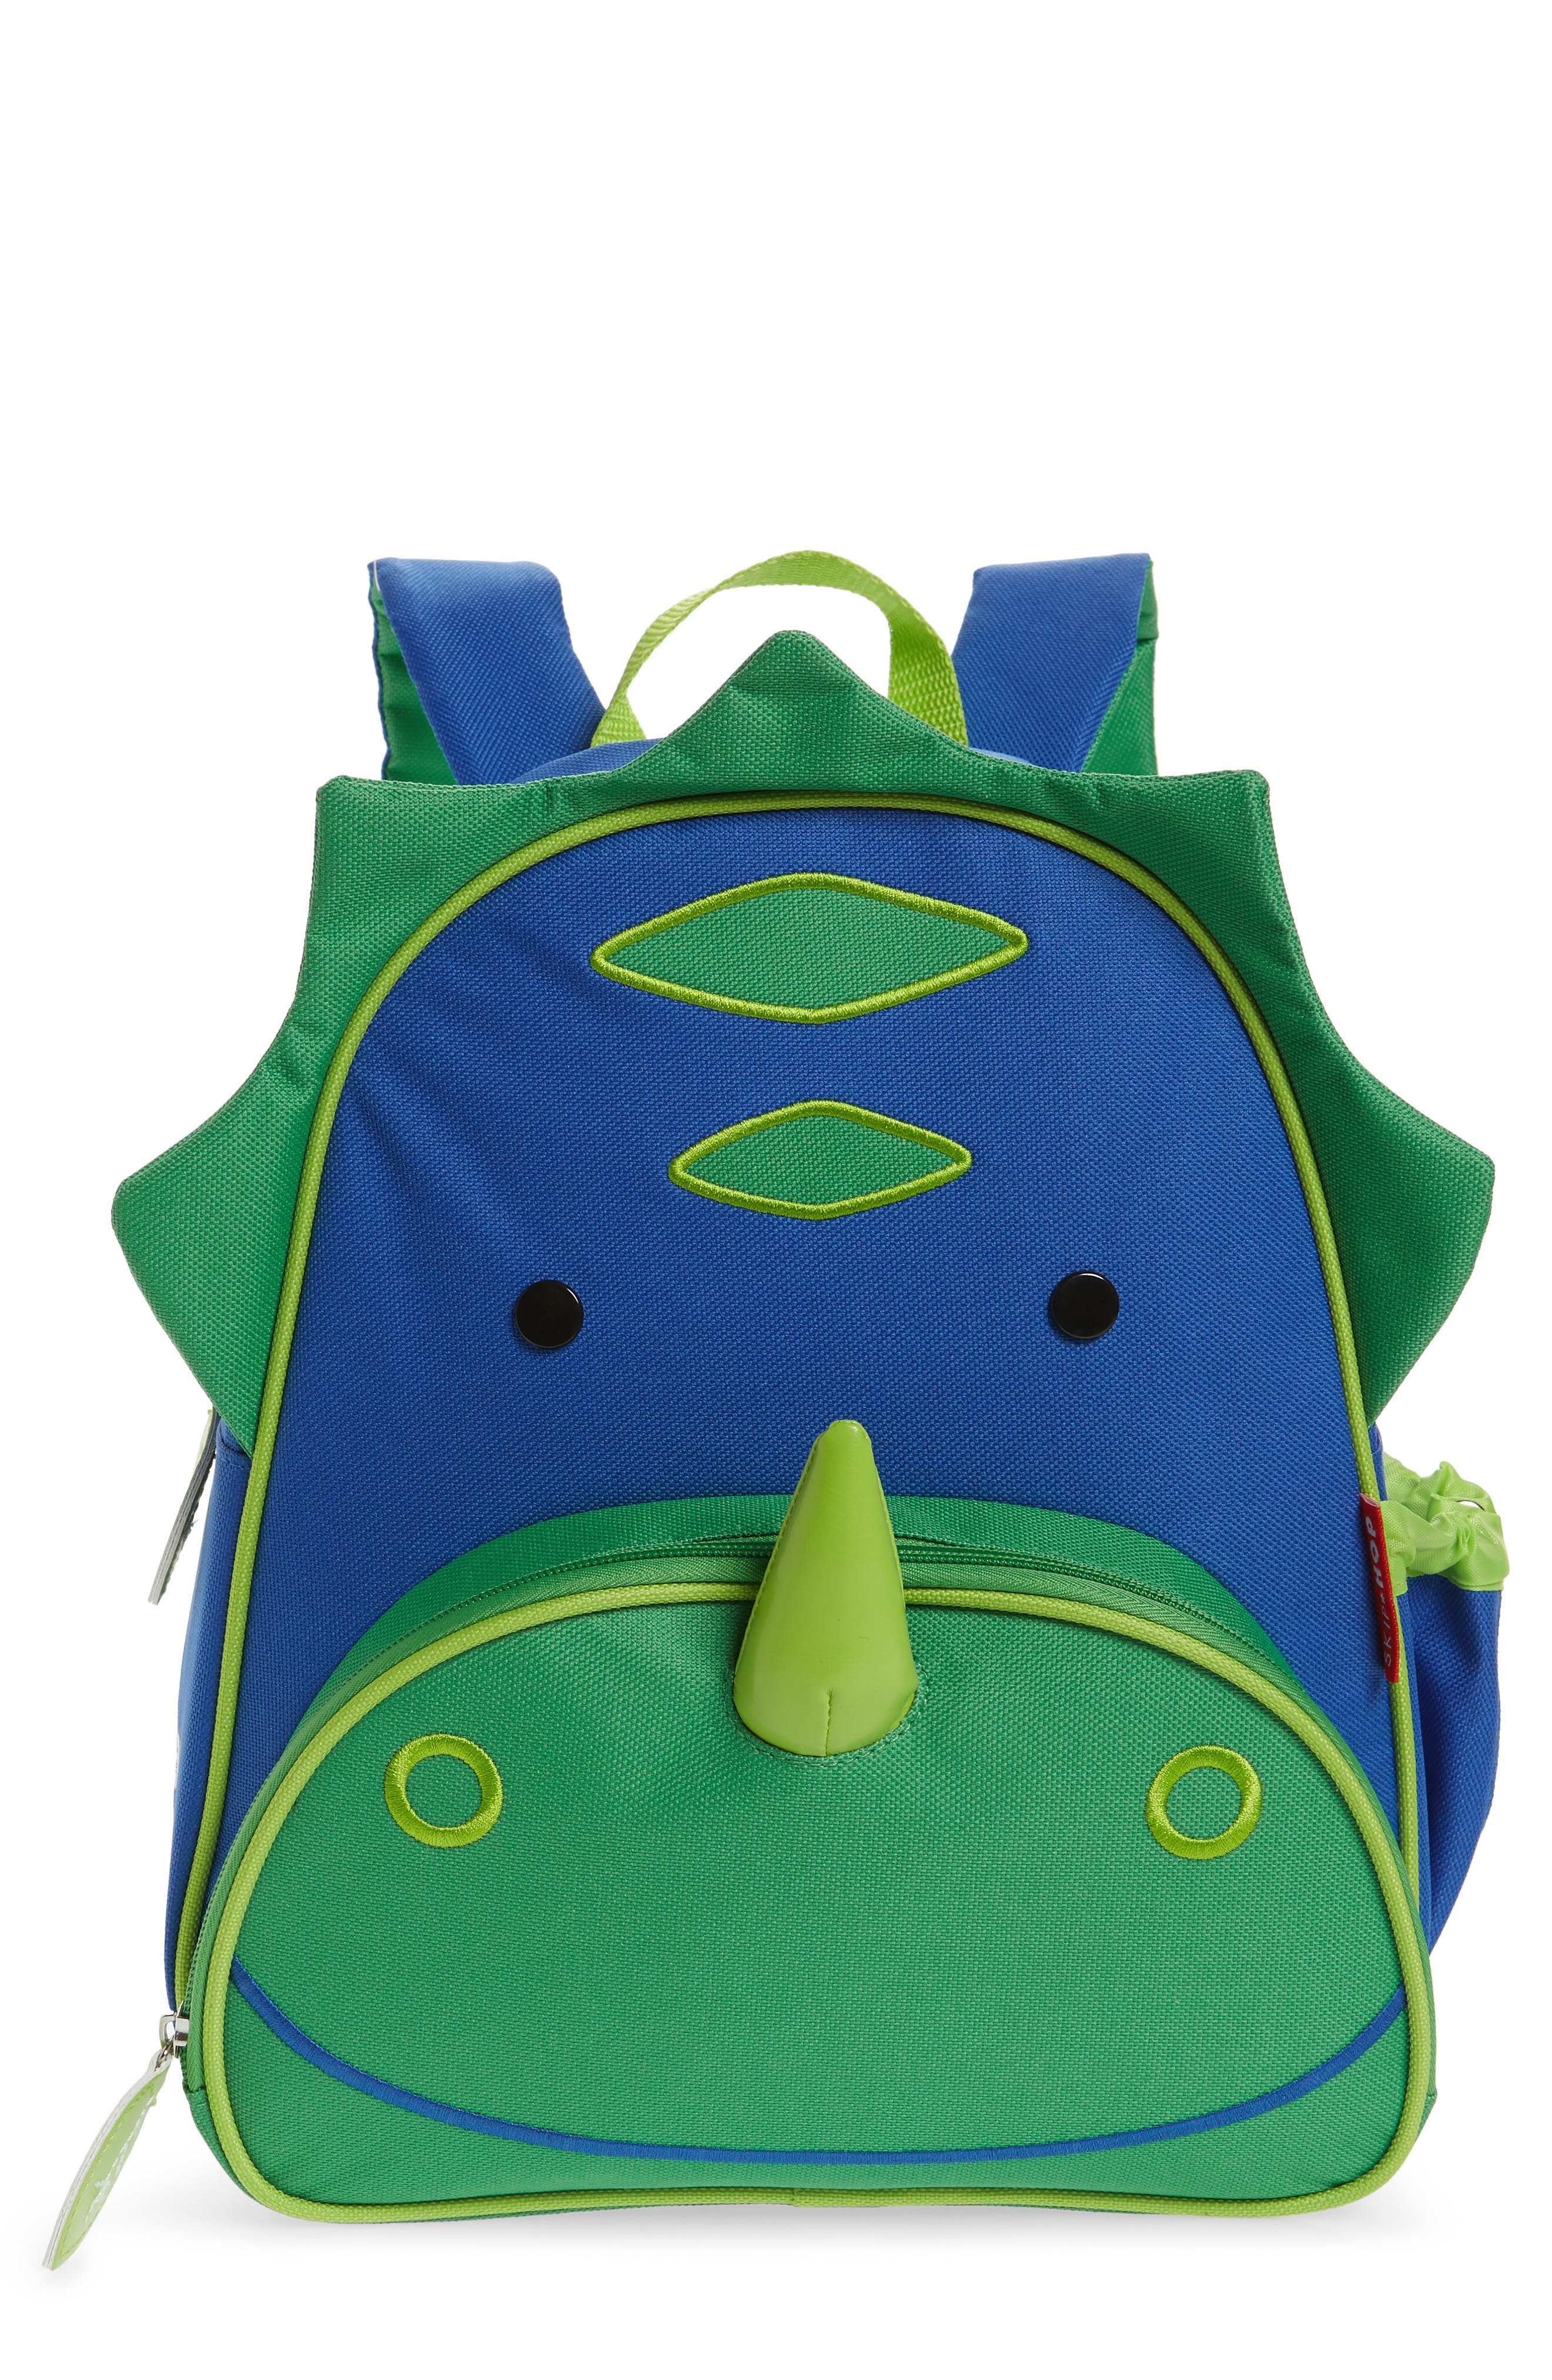 Zoo Pack Backpack,                         Main,                         color, Green/ Blue